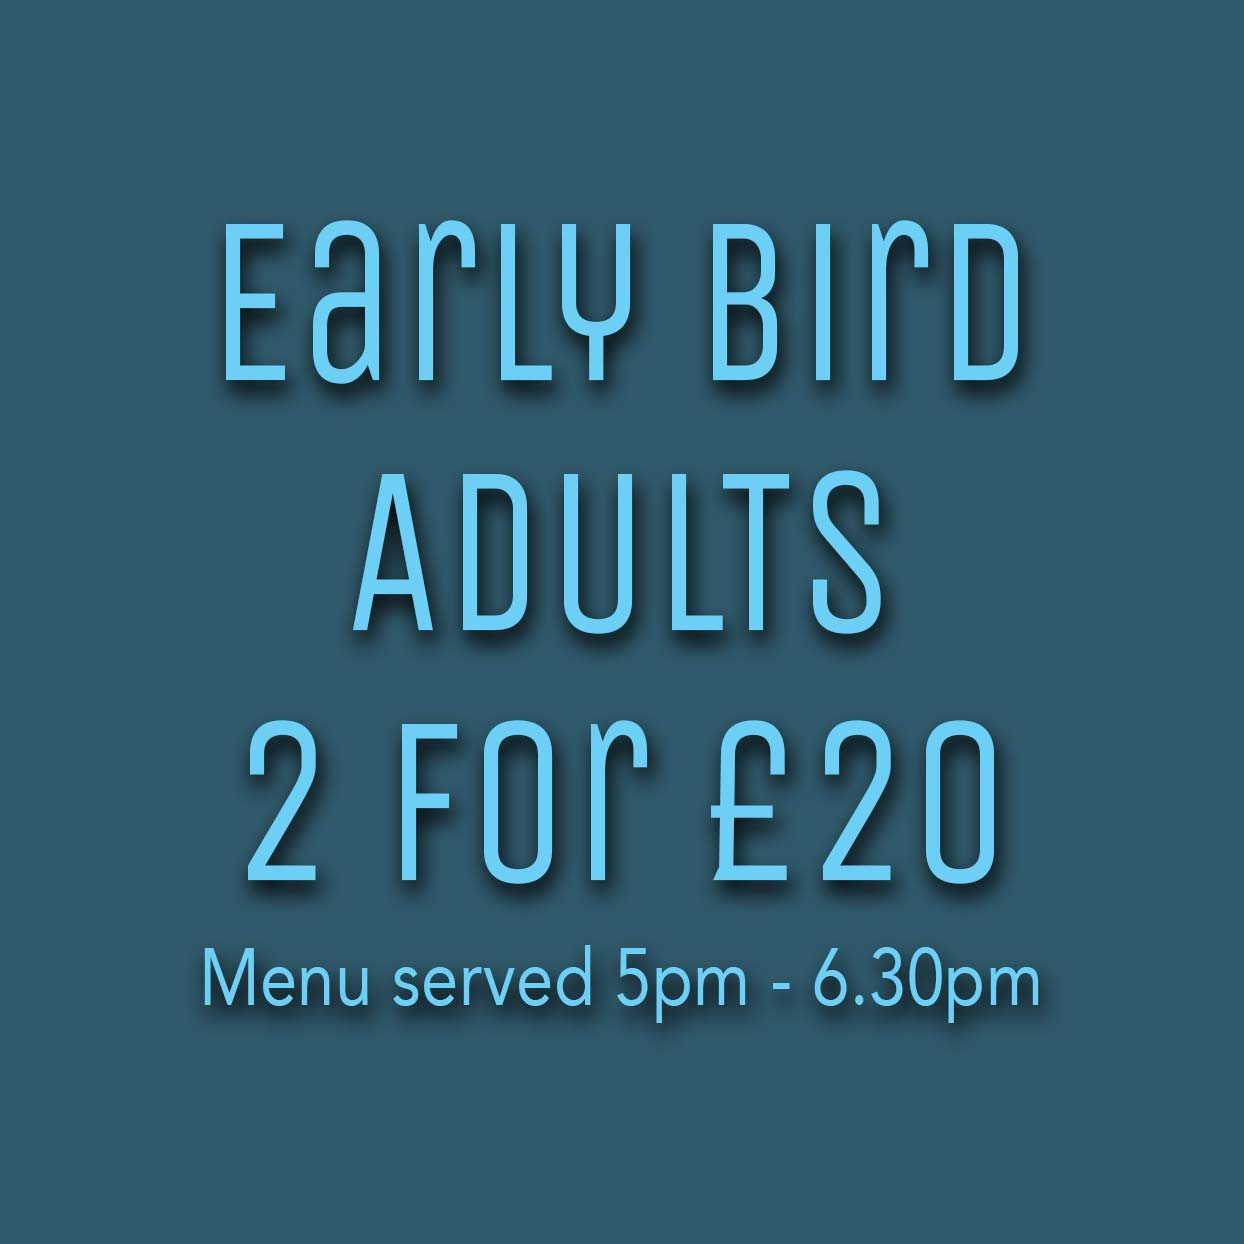 Early Bird Adults Menu 2 for £20